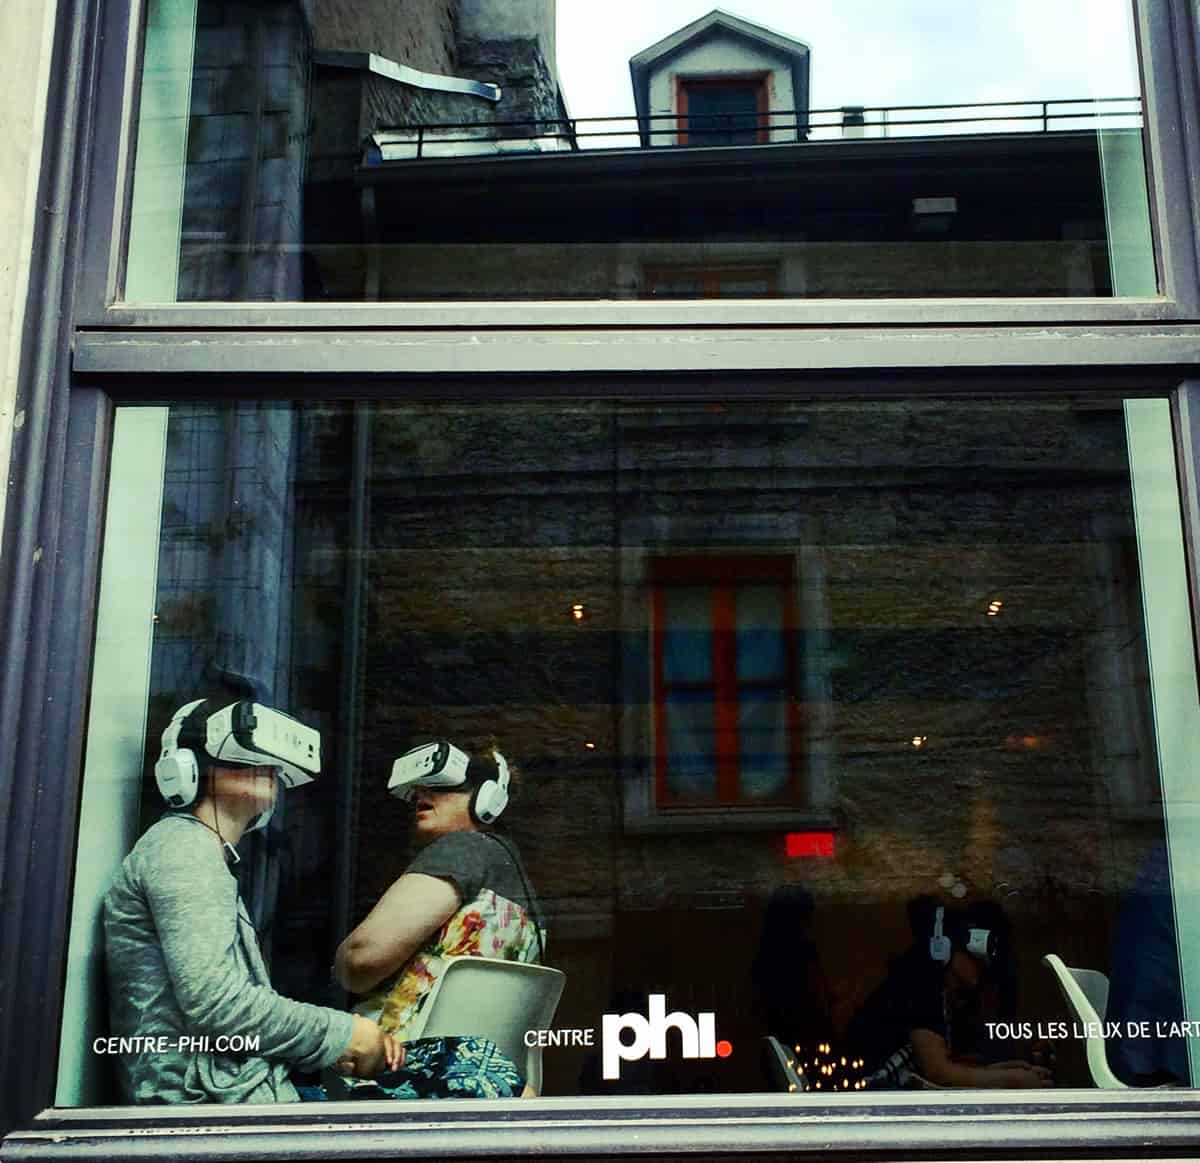 A photo of a couple sitting in a storefront window, each wearing head-mounted virtual reality goggles.